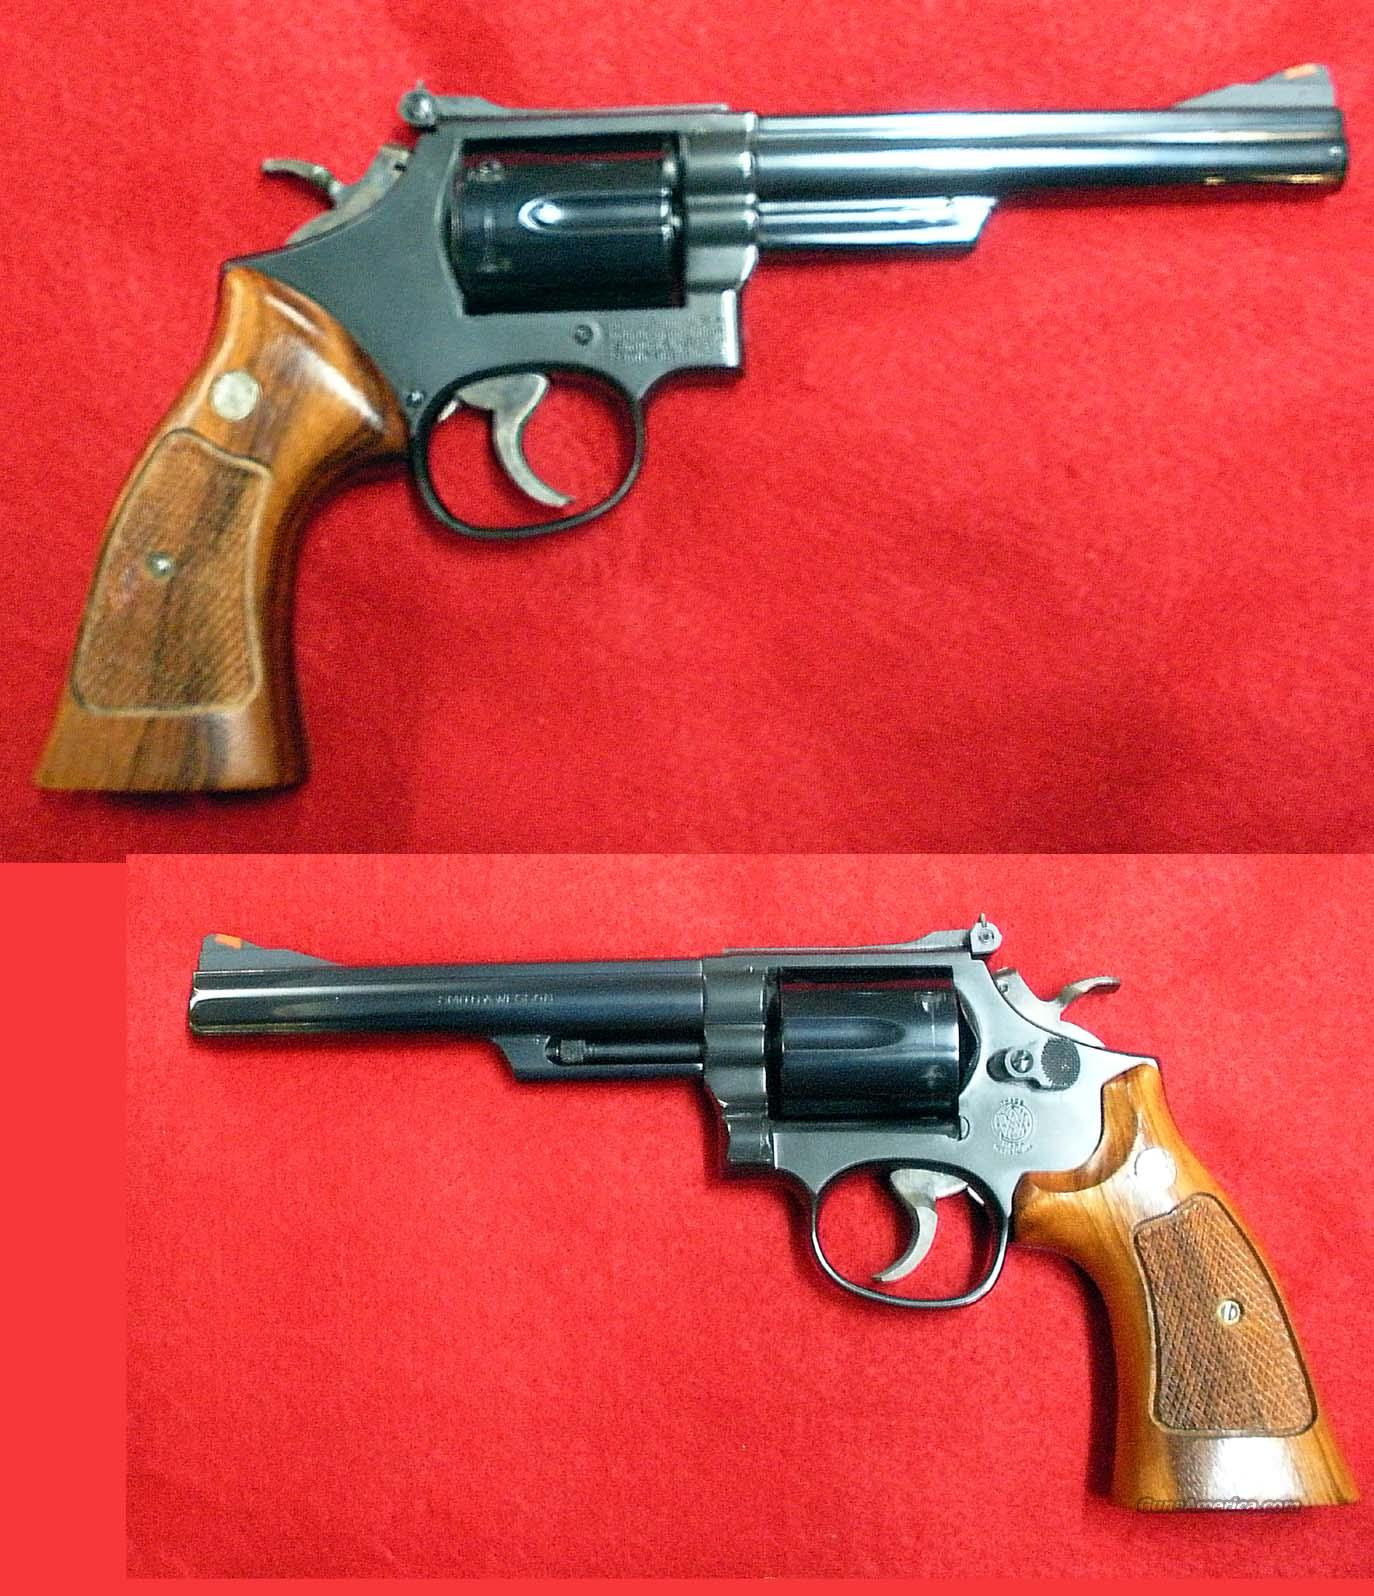 S&W 19-4  Guns > Pistols > Smith & Wesson Revolvers > Full Frame Revolver